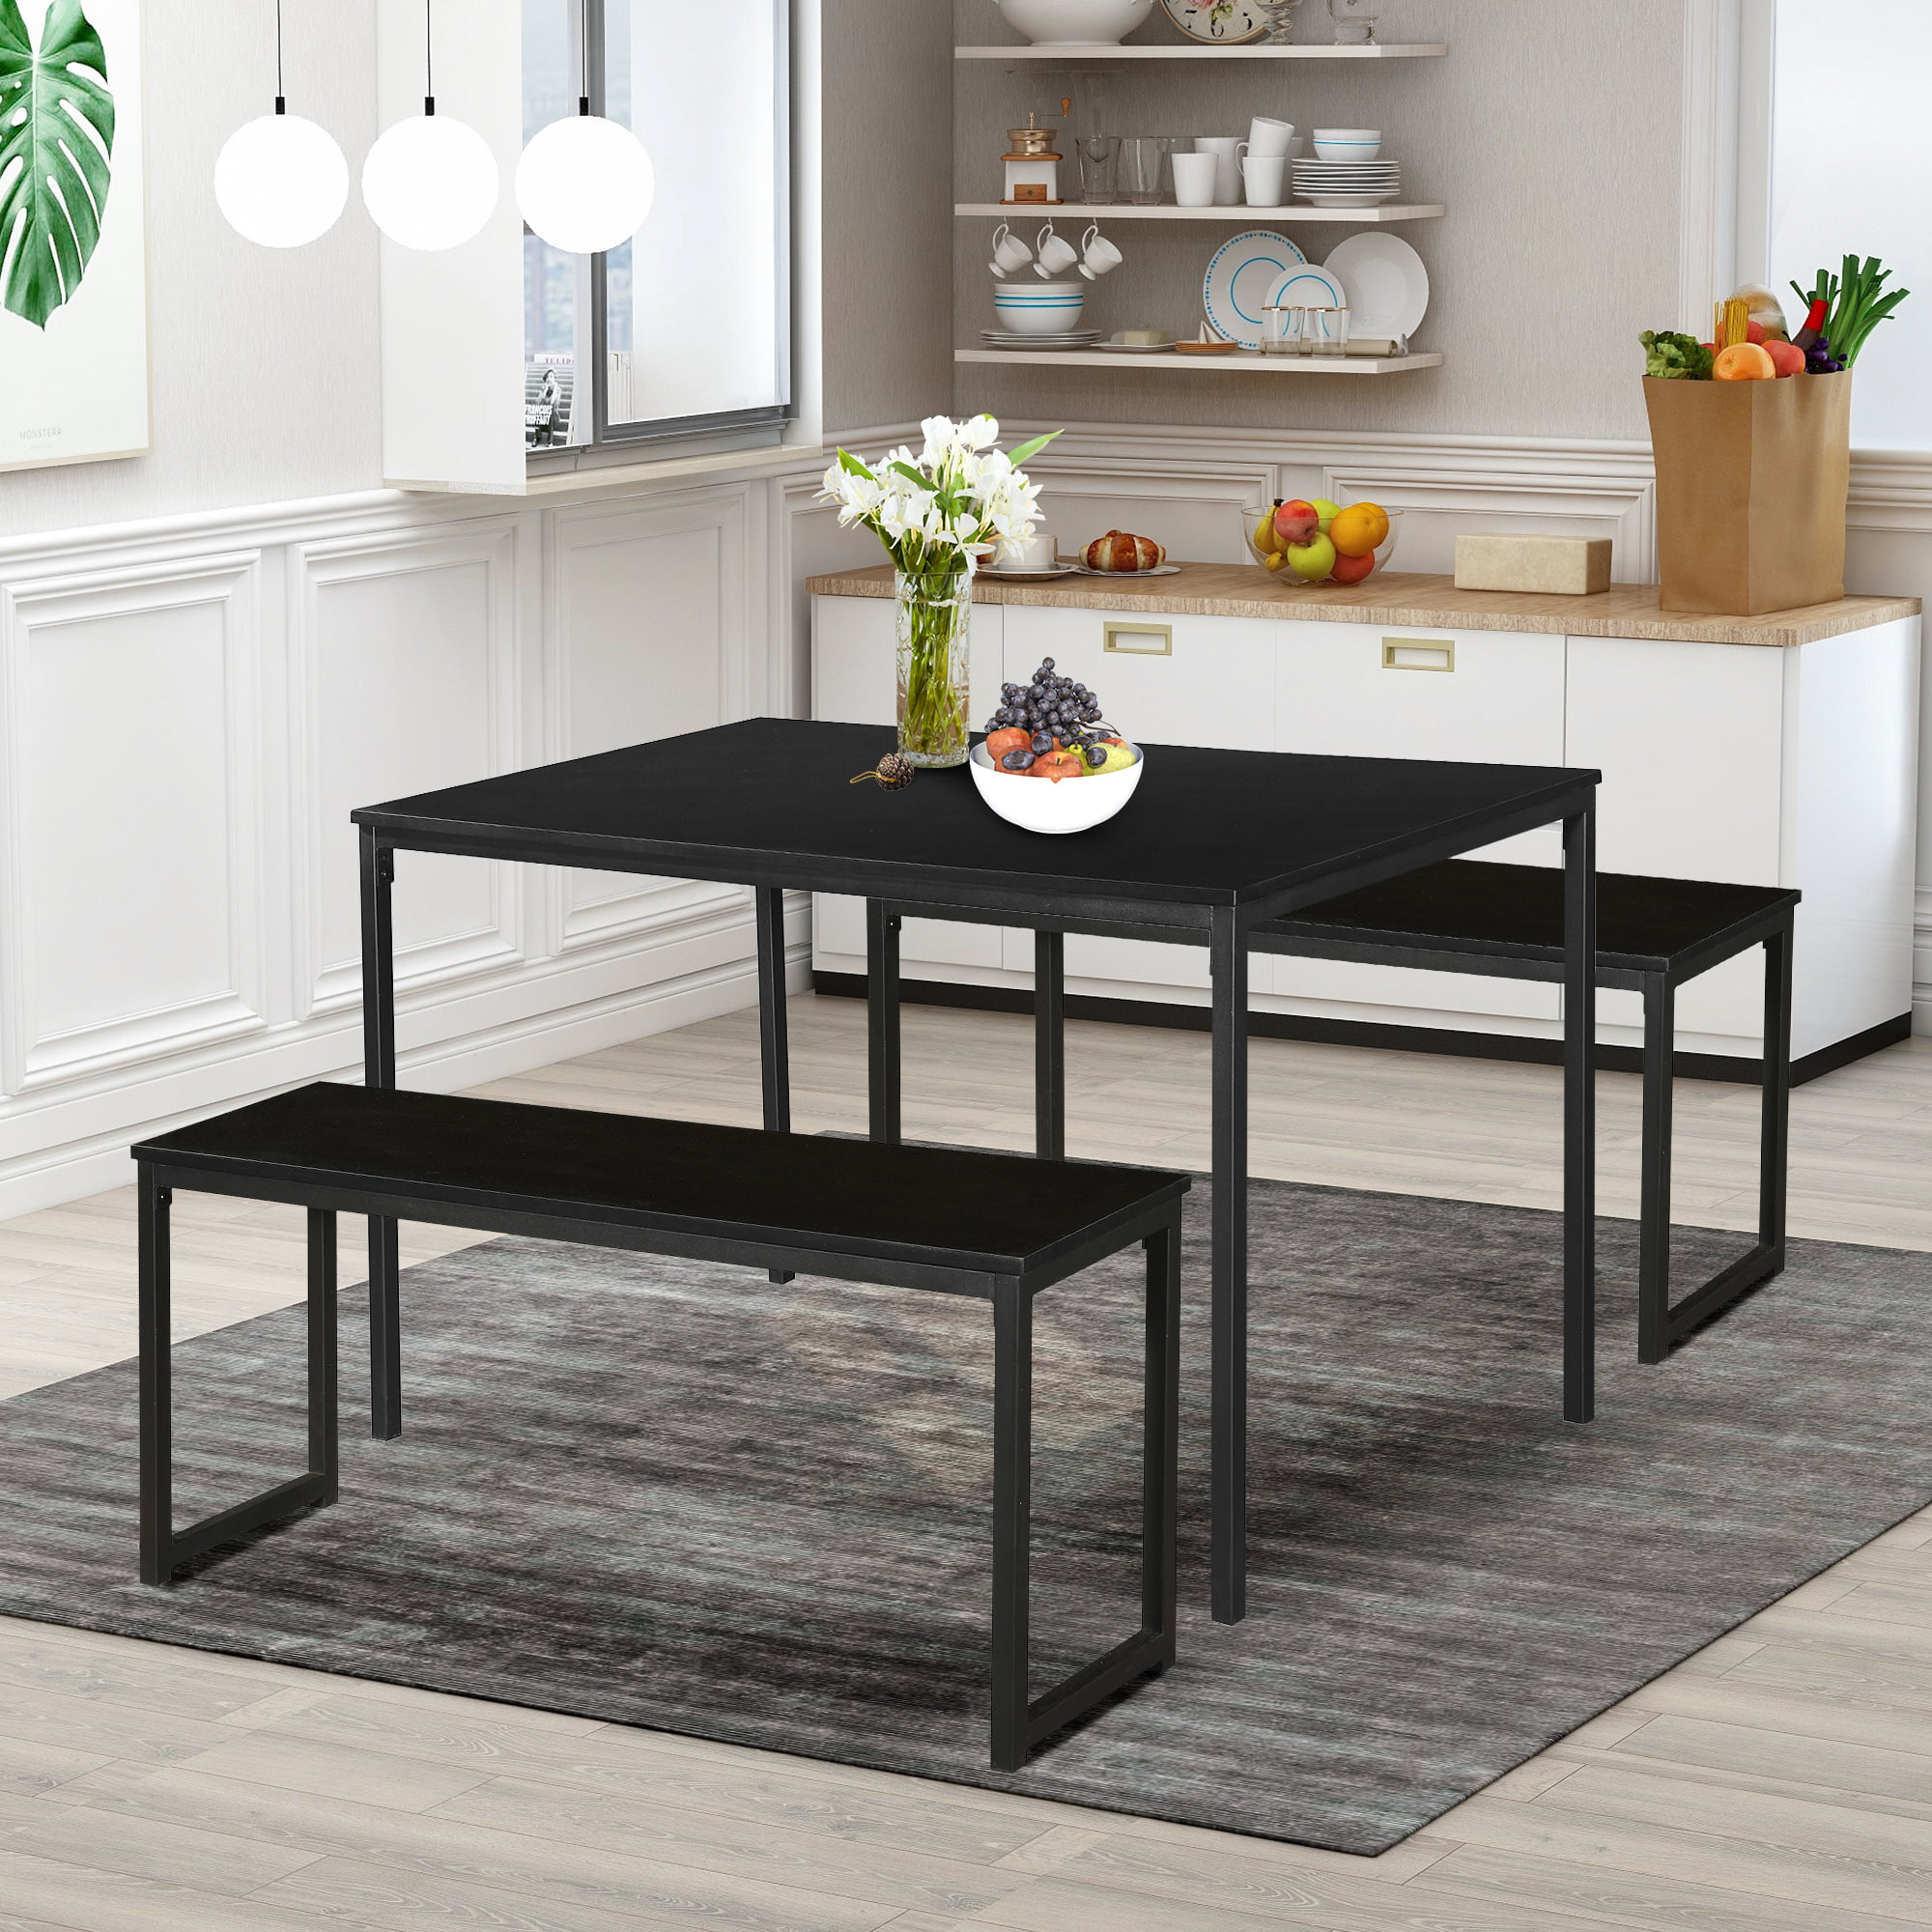 dining table set with bench 3 pieces farmhouse kitchen